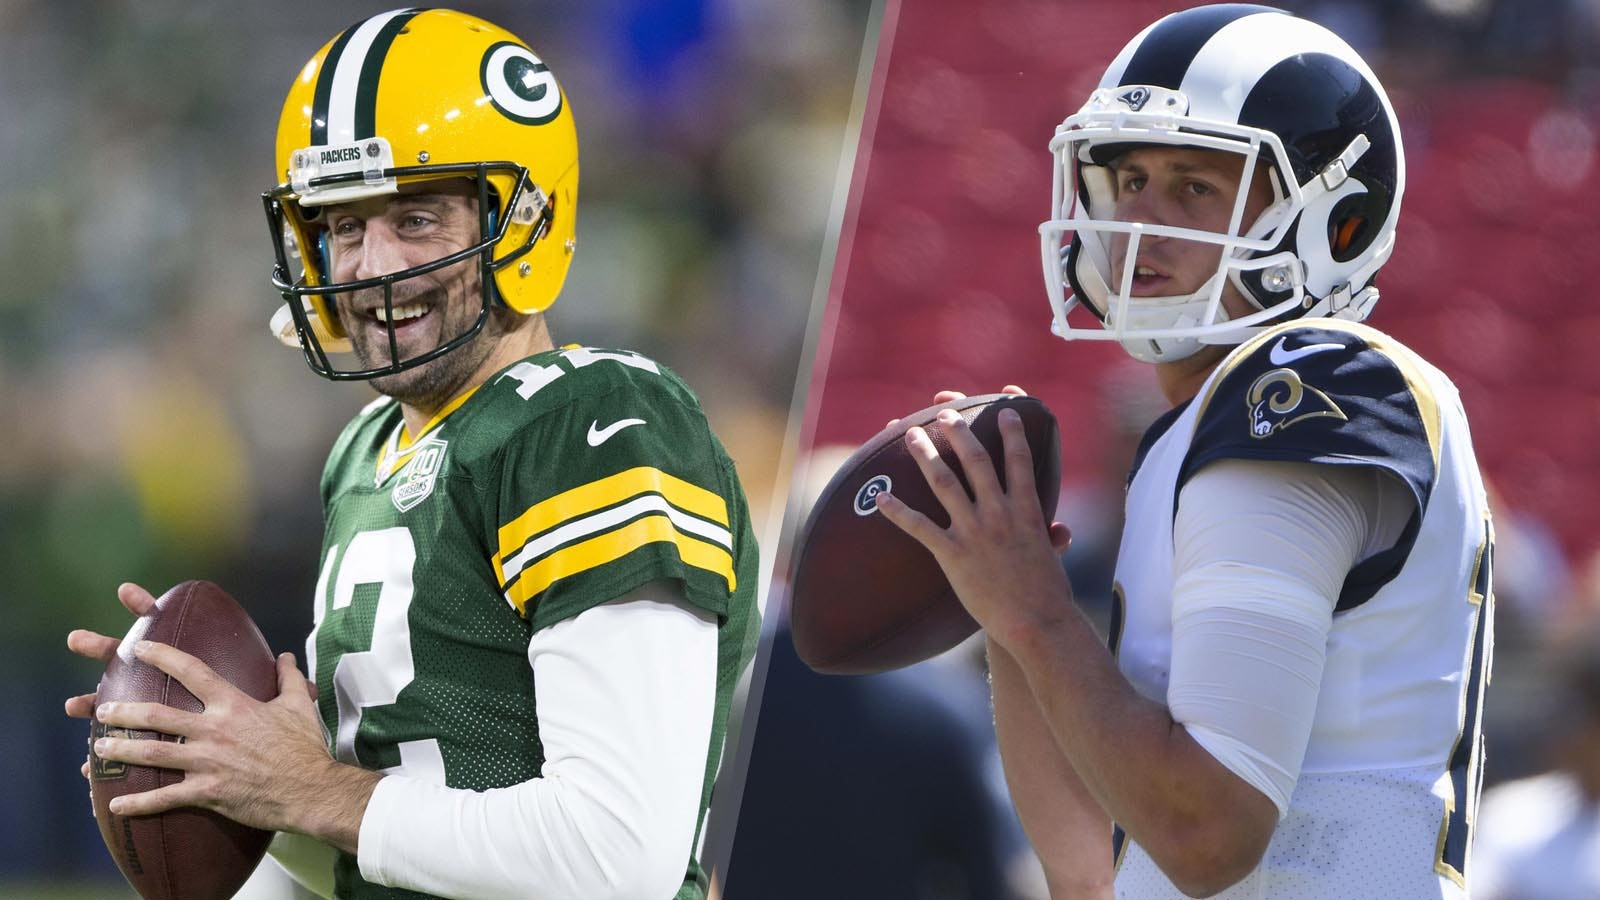 Preview Rodgers Is Healthy But Packers Are Big Underdogs Vs Rams Fox Sports